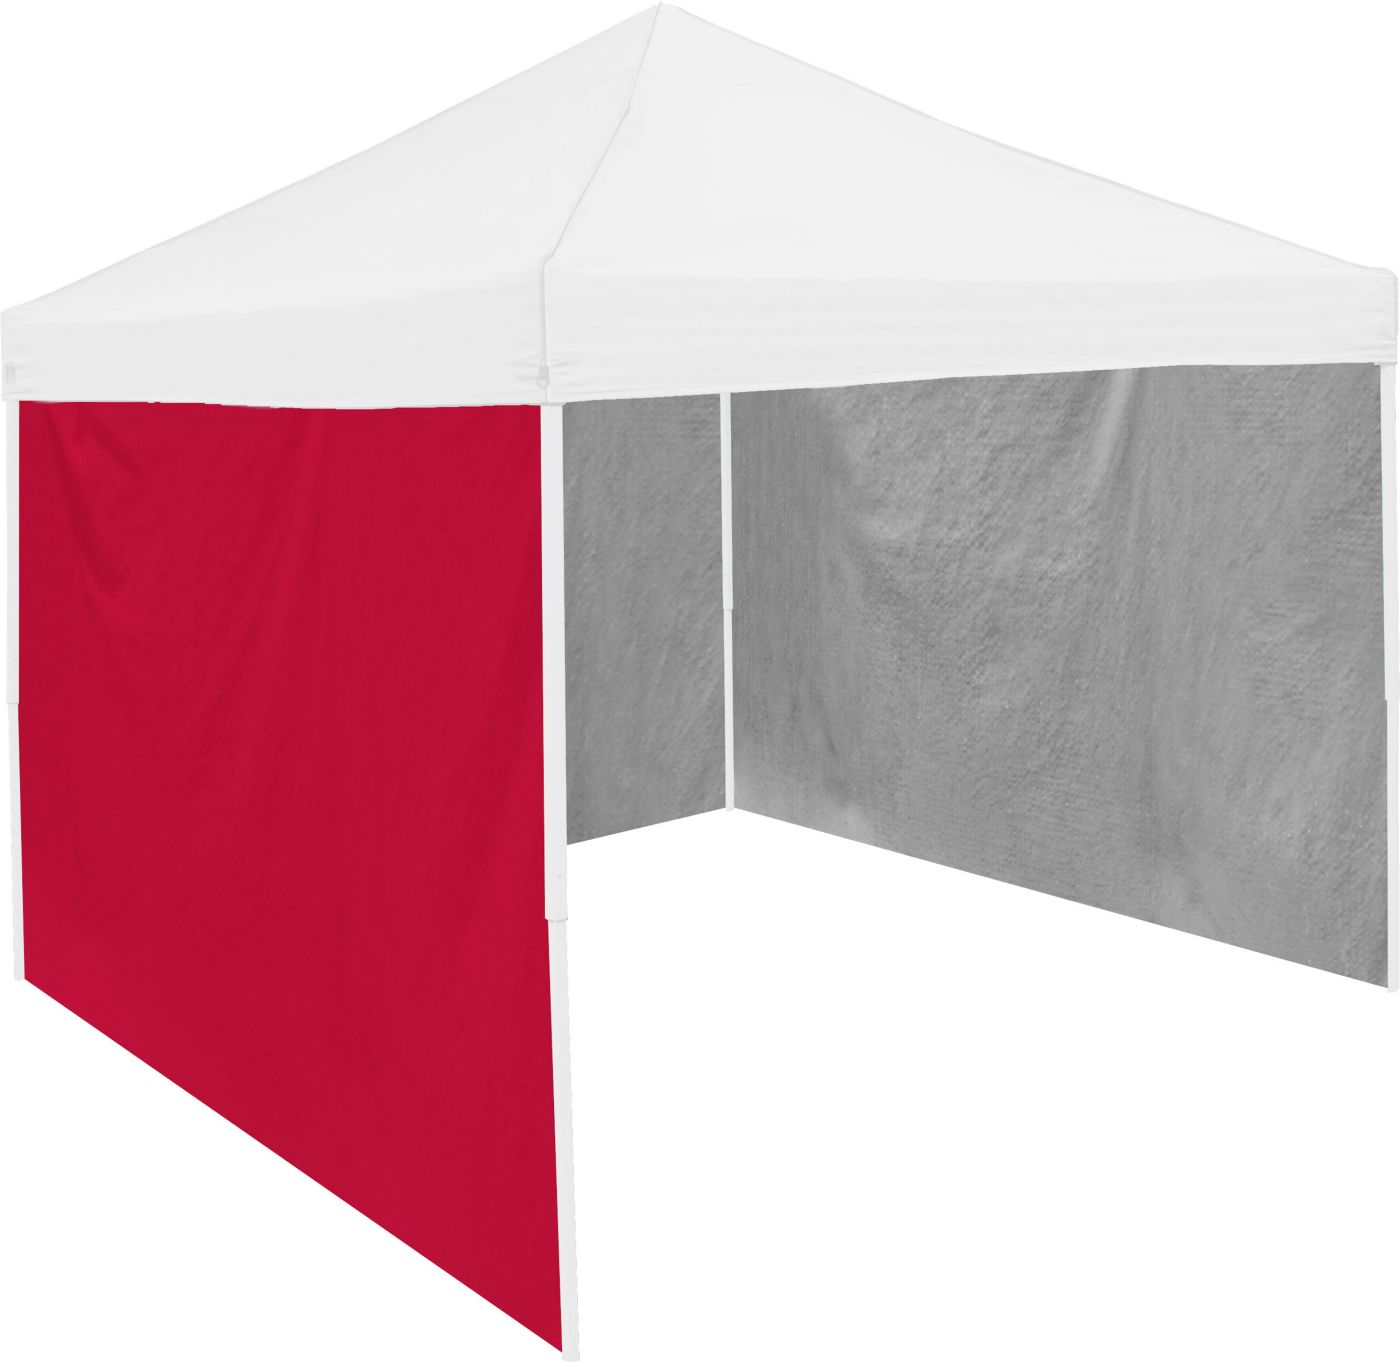 Red Tent Side Panel